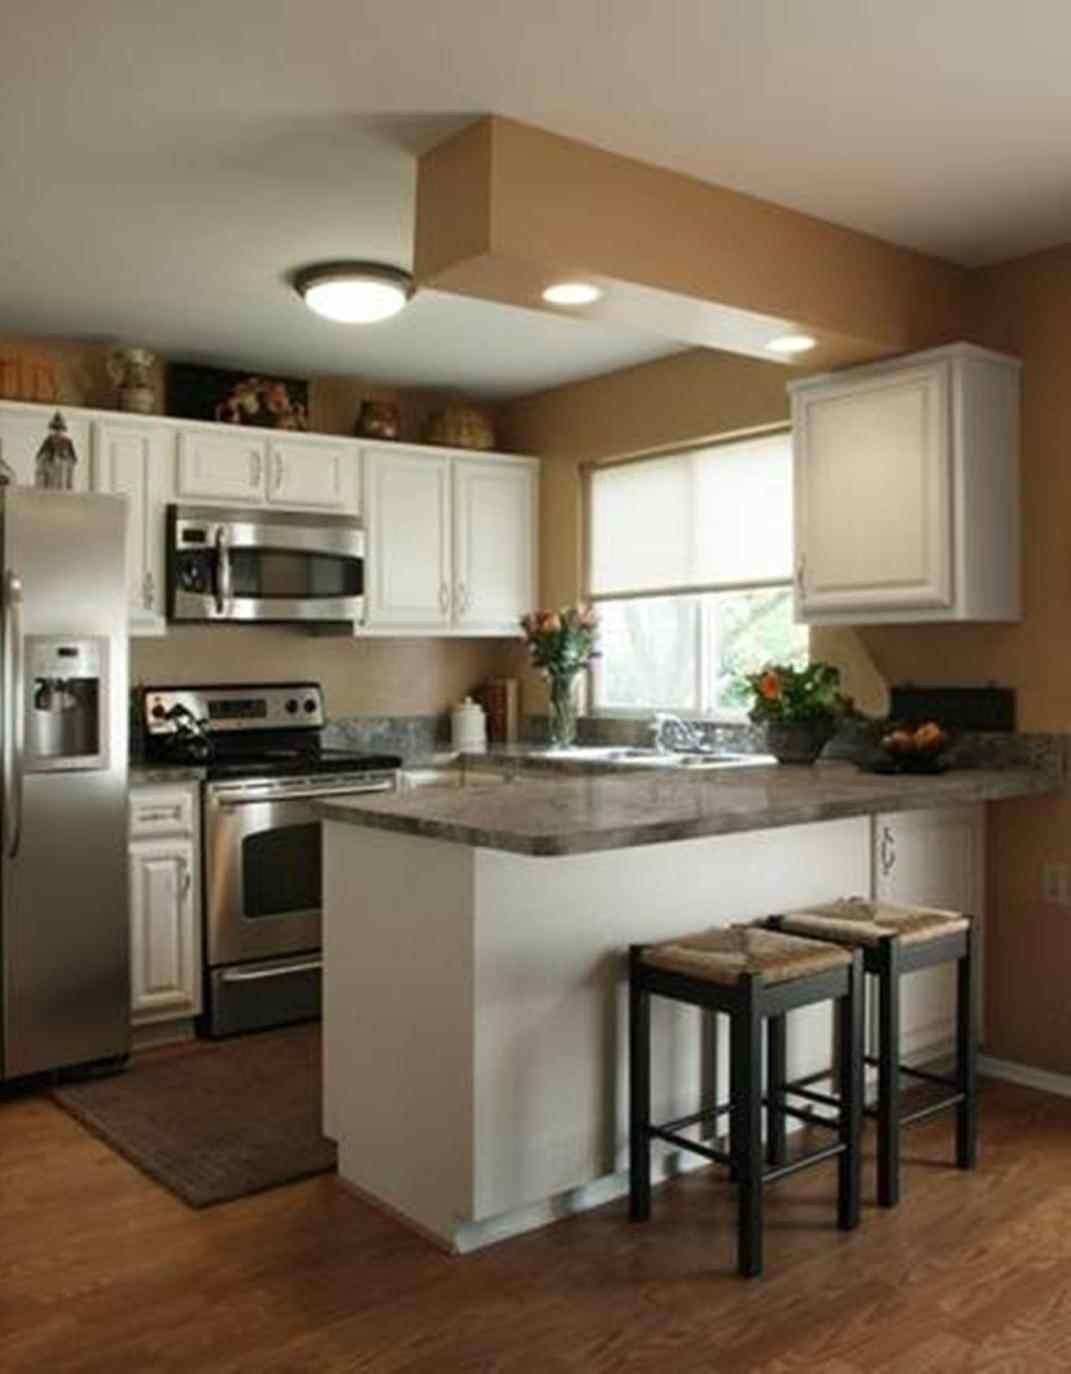 Small Kitchen Design Layout 10x10 Kitchen Design Ideas Kitchen Remodel Small Small Modern Kitchens Small Kitchen Makeovers